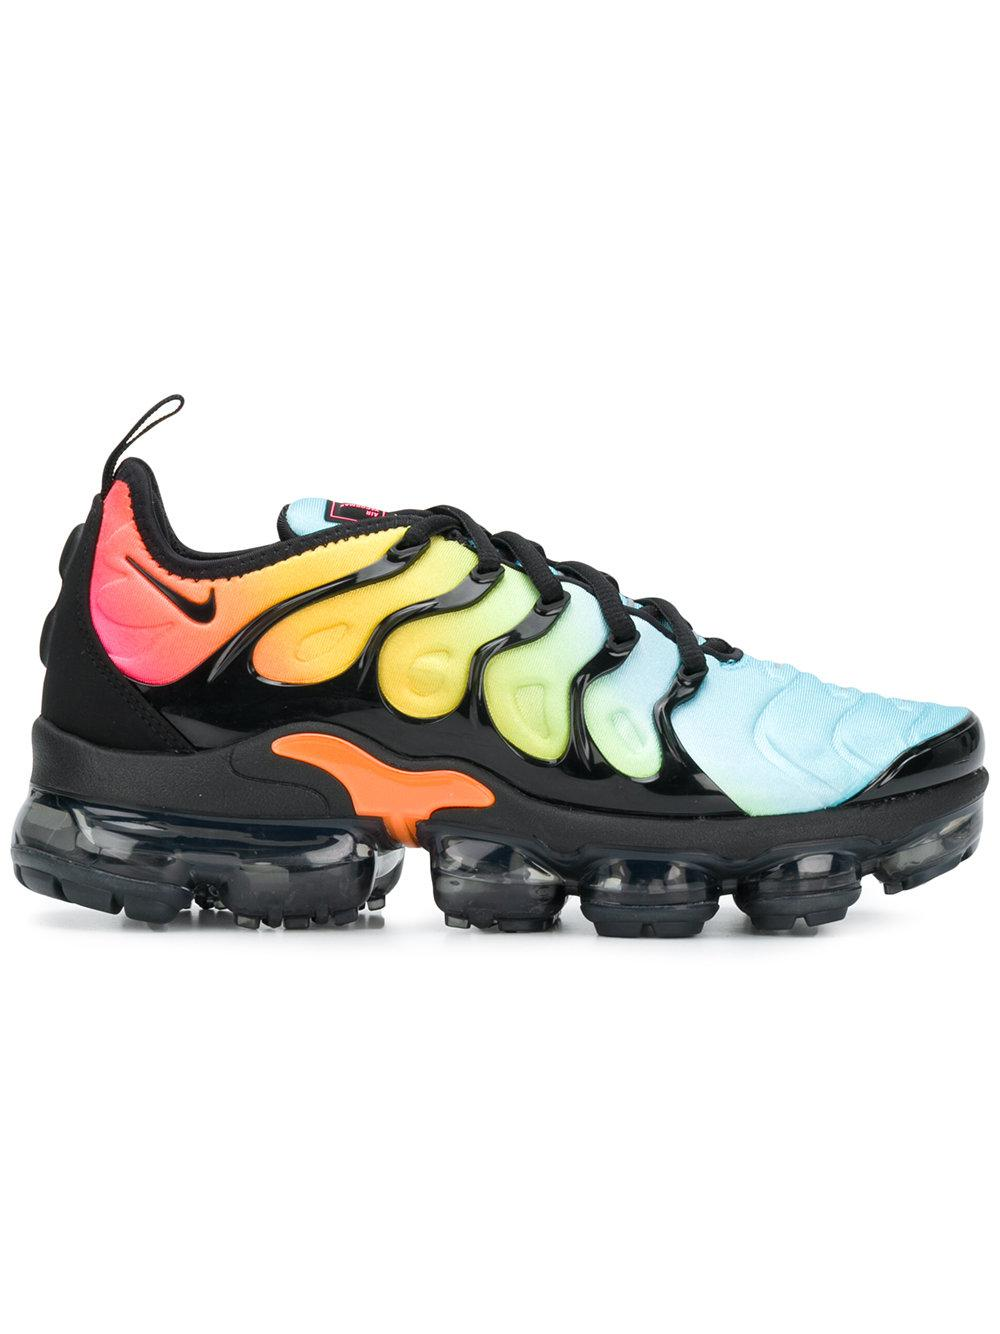 dff6094e84cb Nike Air Vapor Max Plus Ombre Trainers In Orange